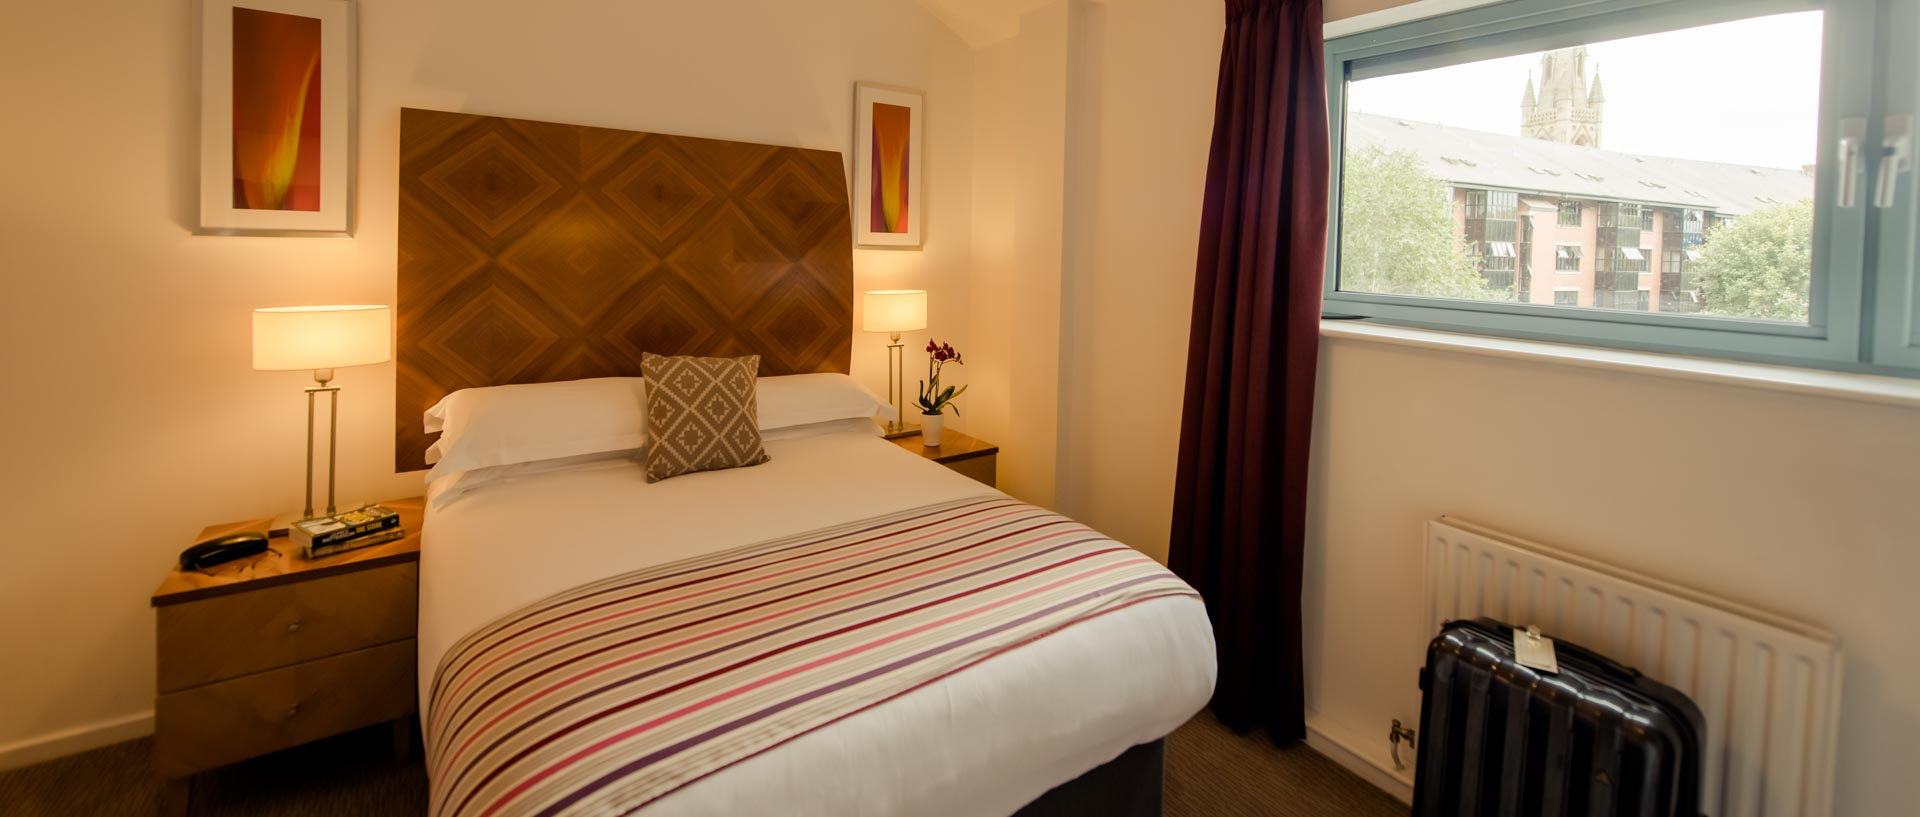 Large double bed at PREMIER SUITES Newcastle